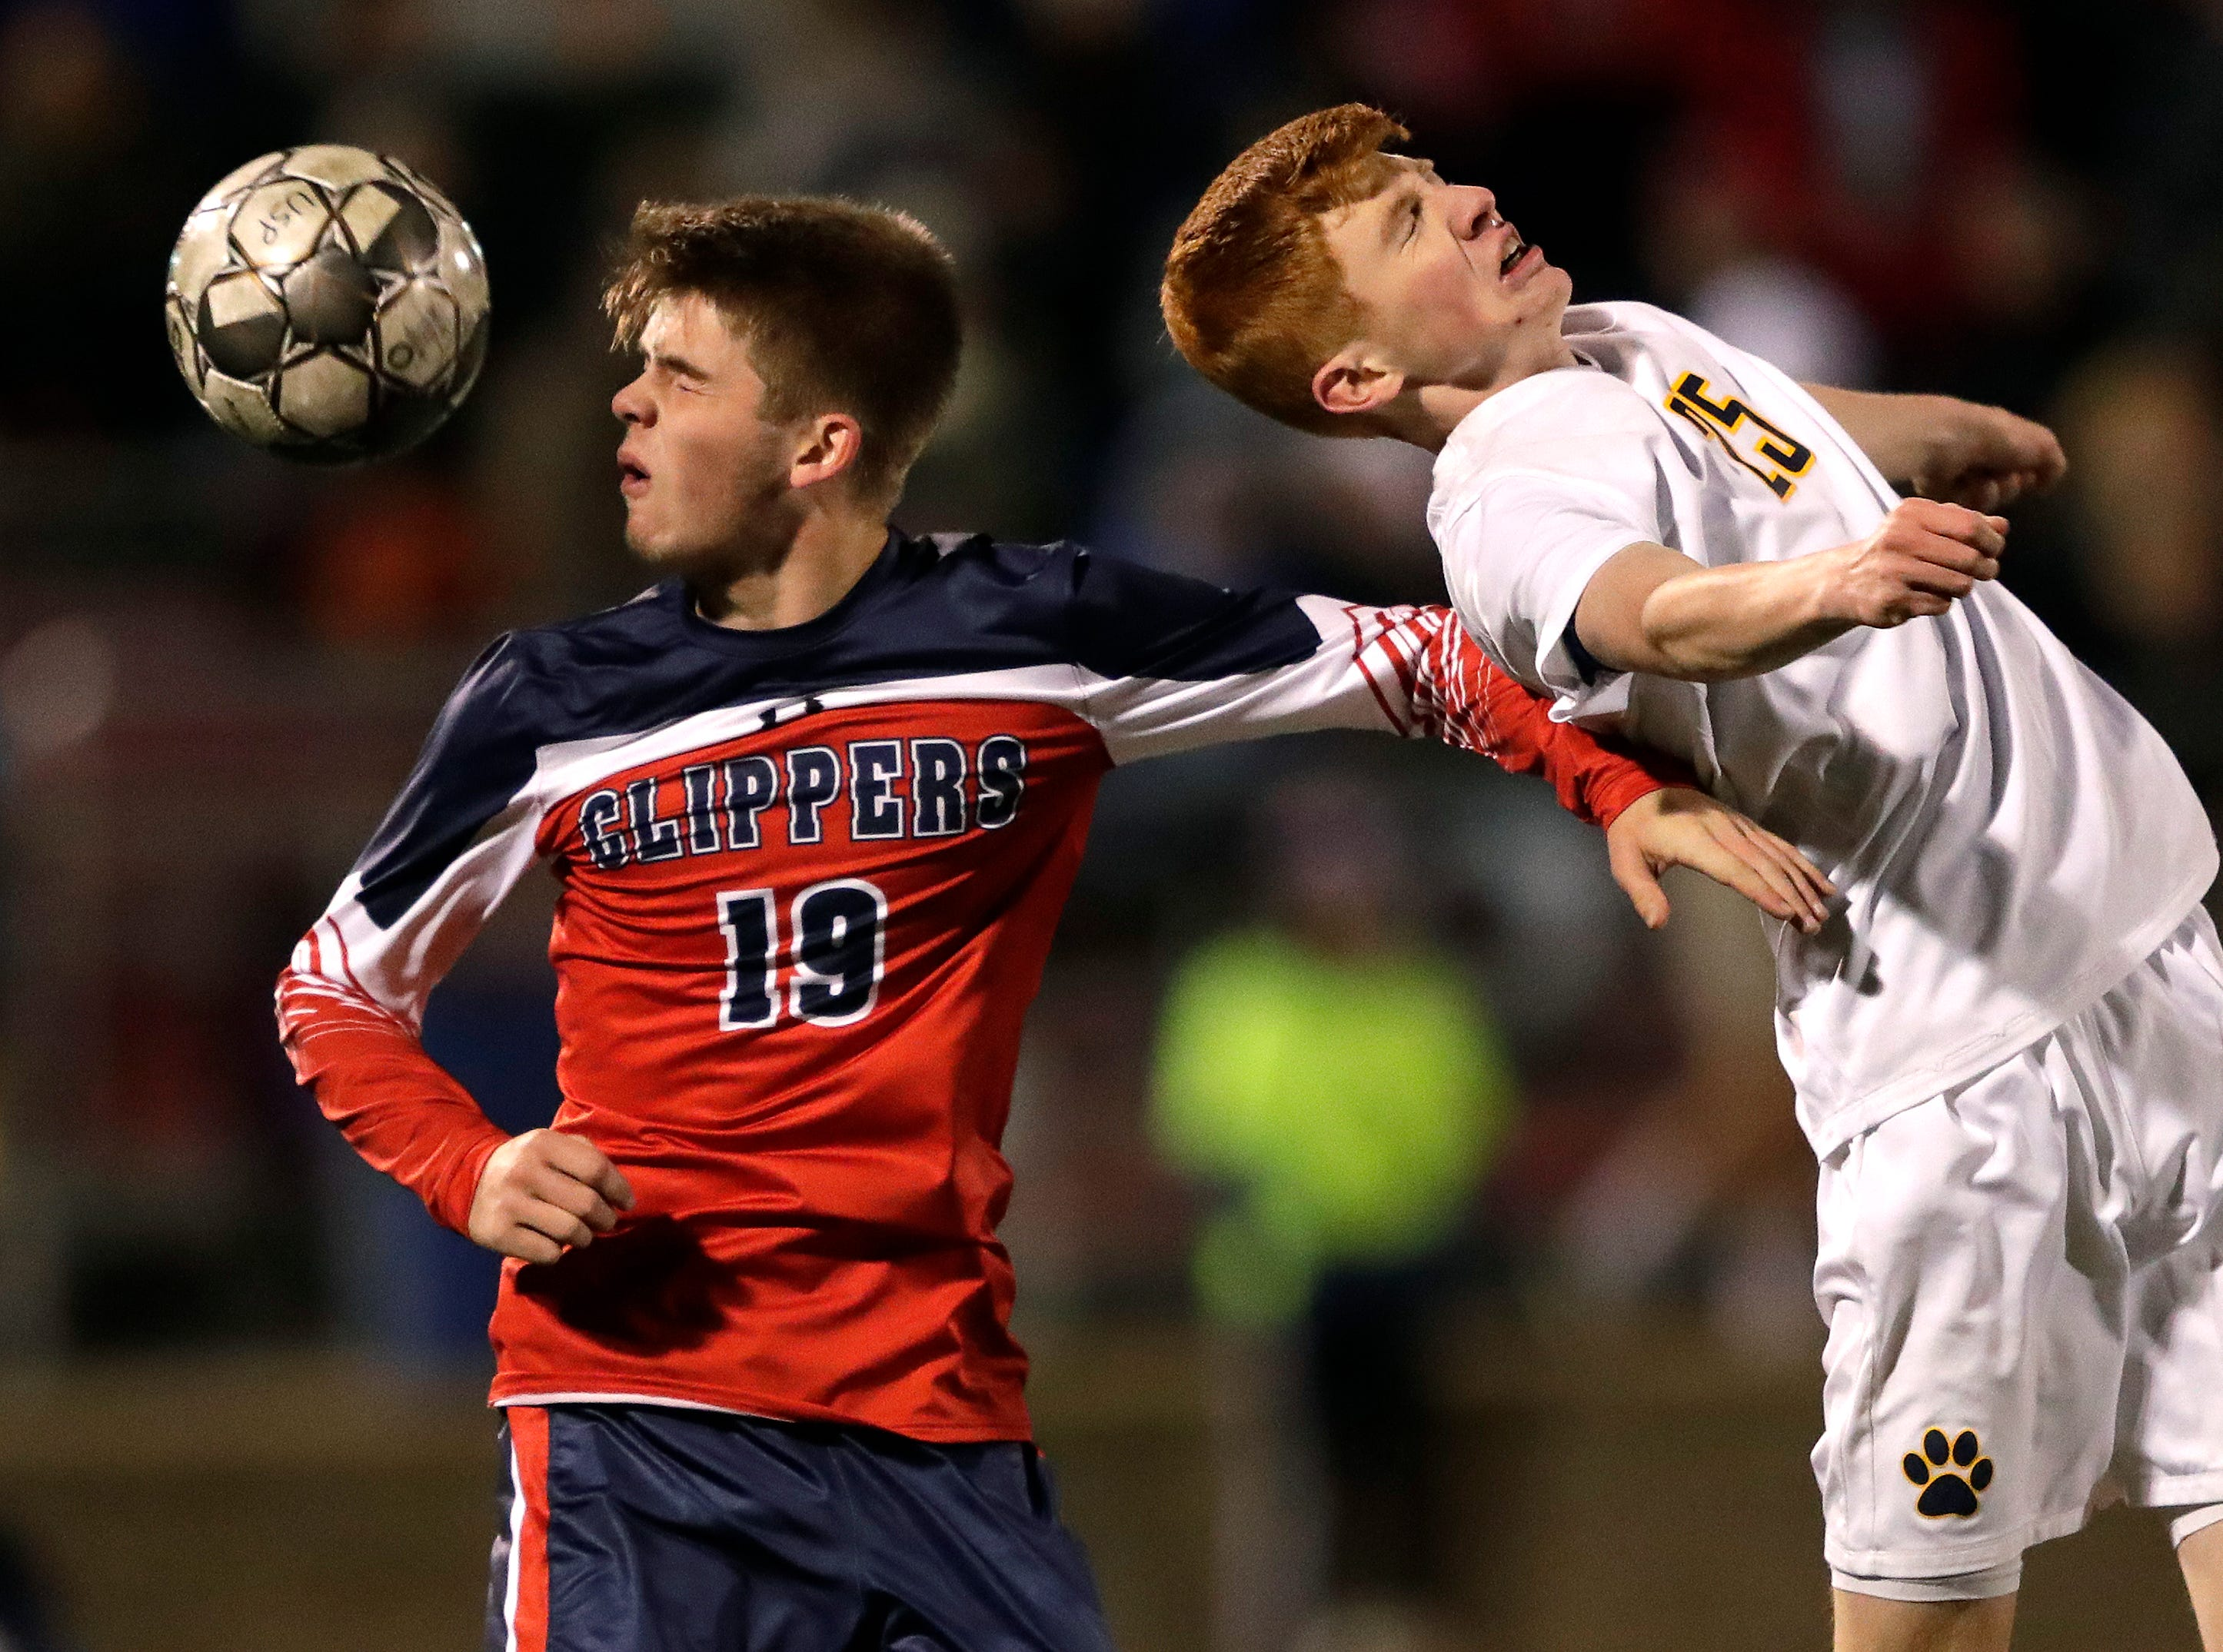 Sturgeon Bay High School's Owen Stevenson (19) goes up for a header against University School of Milwaukee's Bradshaw Morel (25) during their WIAA Division 4 state semifinal boys soccer game Friday, November 2, 2018, at Uihlein Soccer Park in Milwaukee, Wis. 